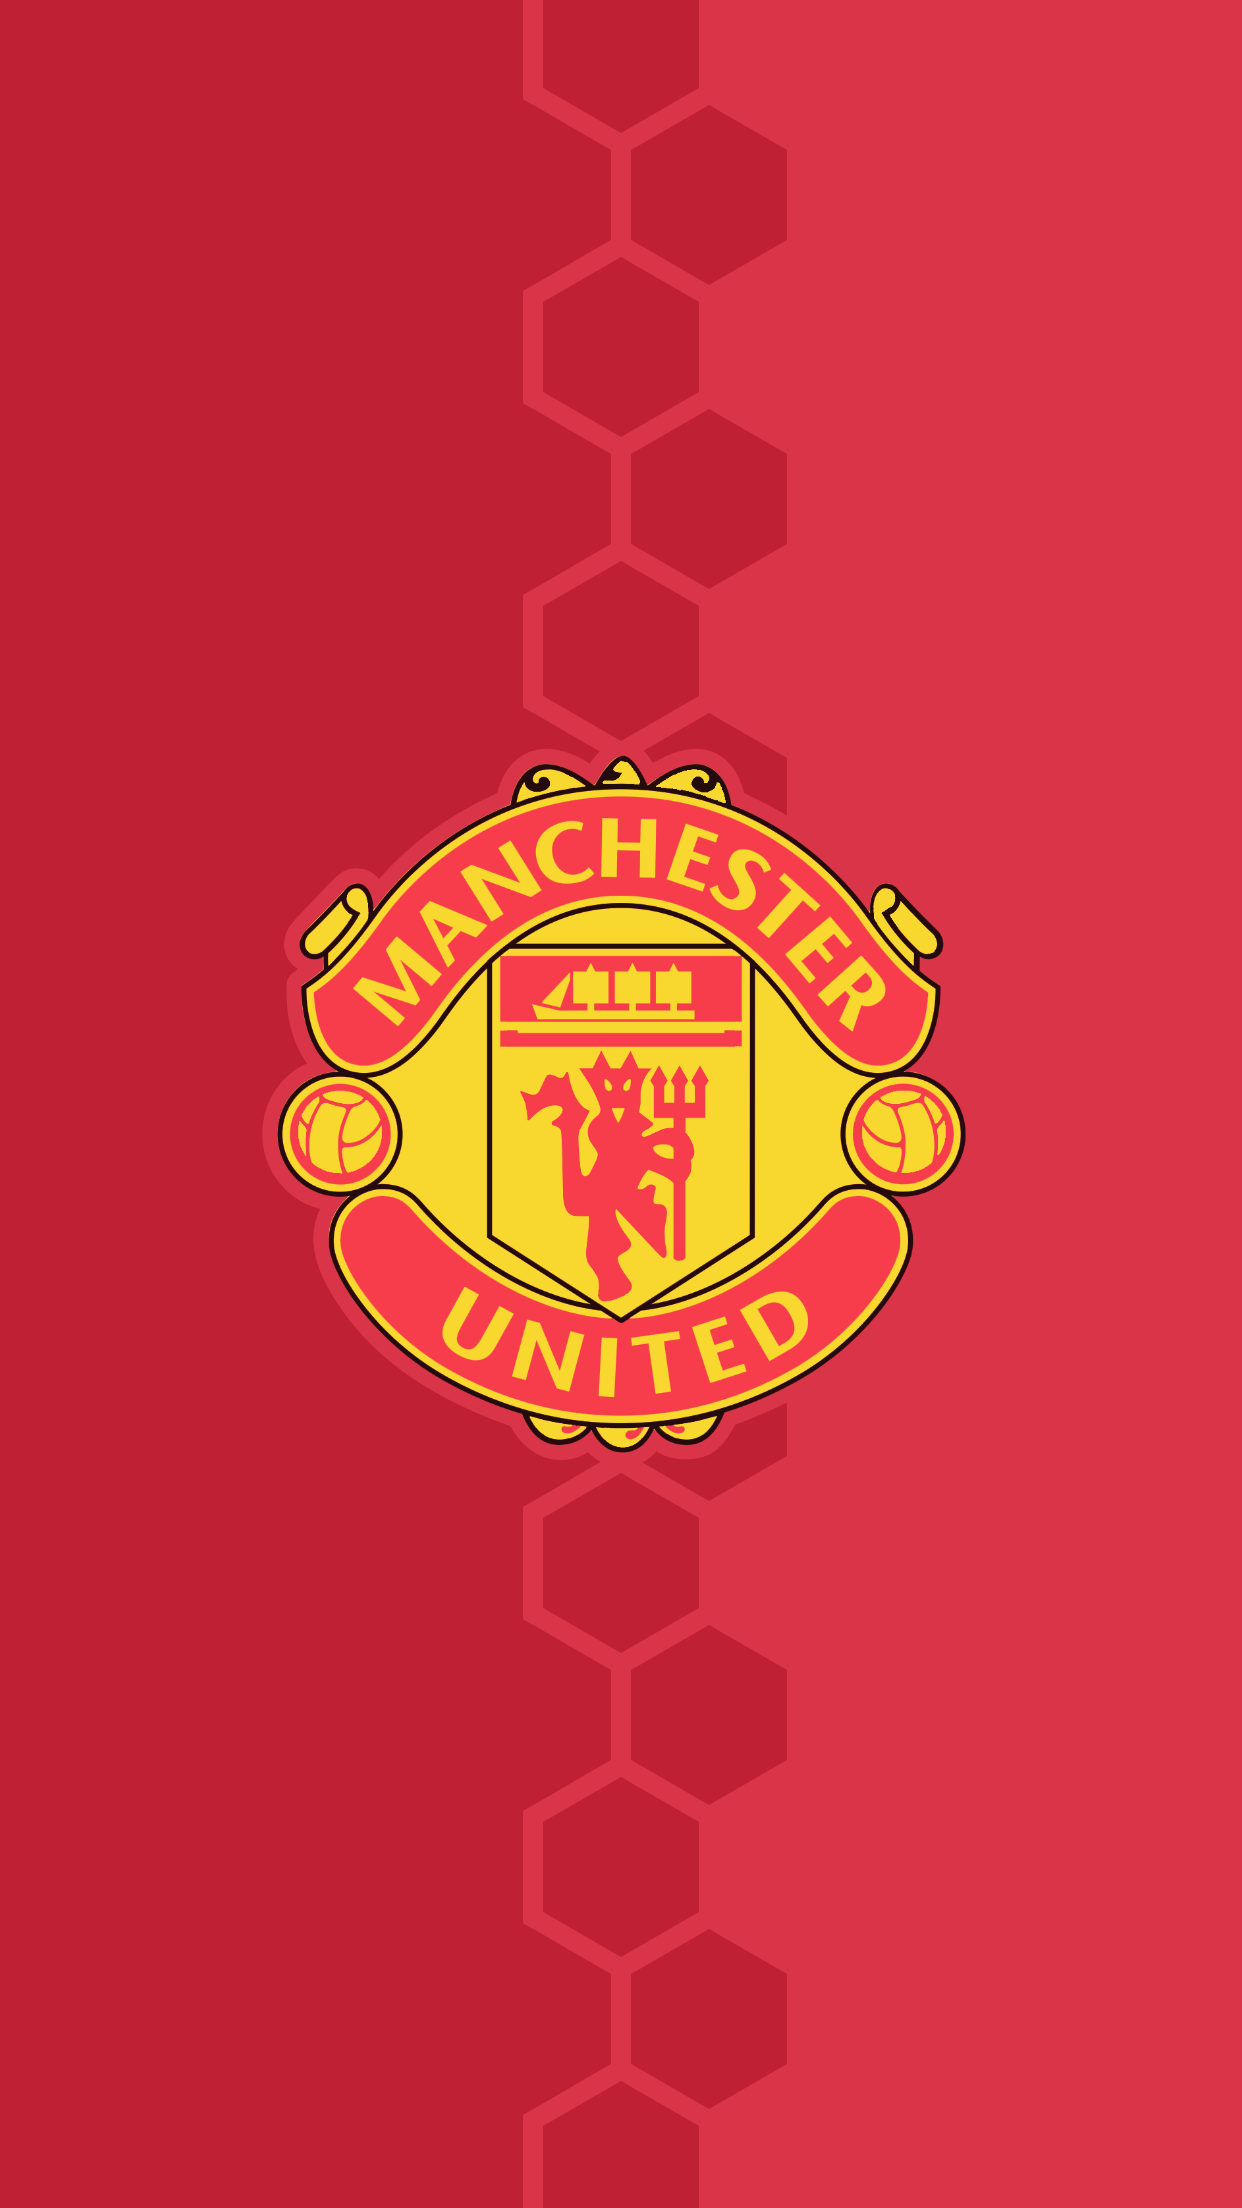 Manchester United Bedroom Wallpaper Pin By Fabian Valencia On Wallpapers Iphone 6 6 Plus Pinterest